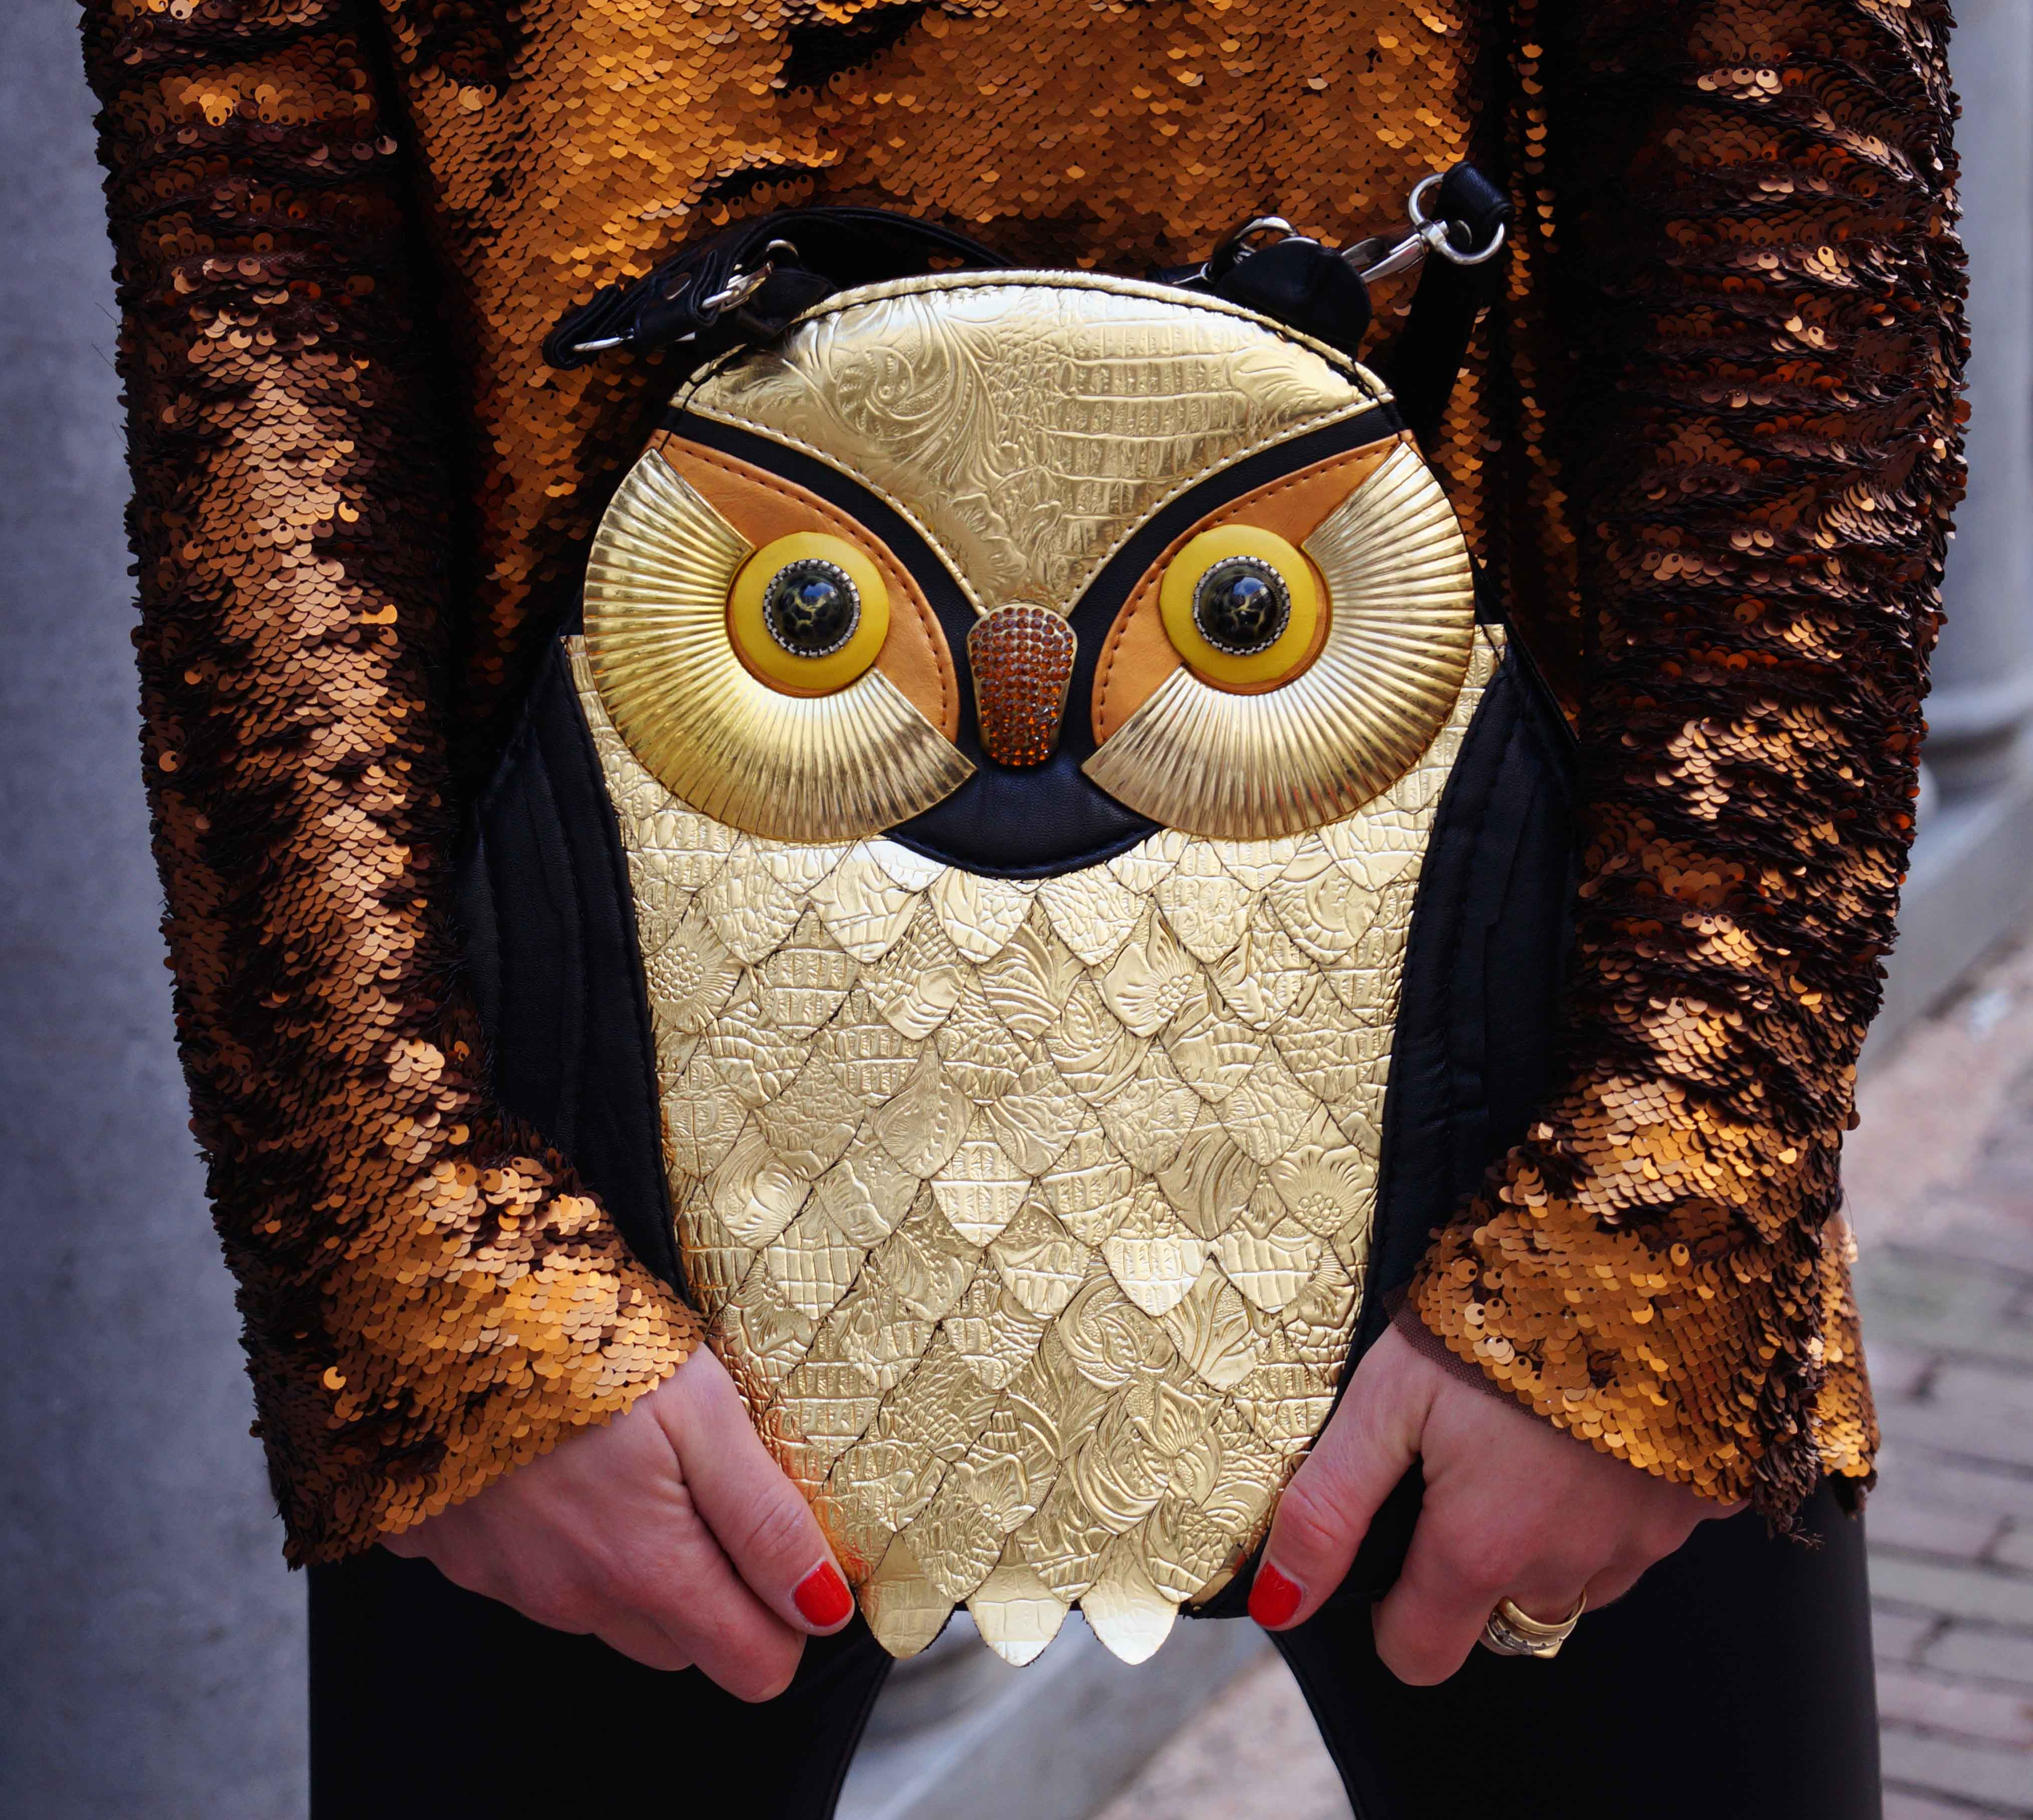 Bag at You - The Bag and the Beast - Holding Owl